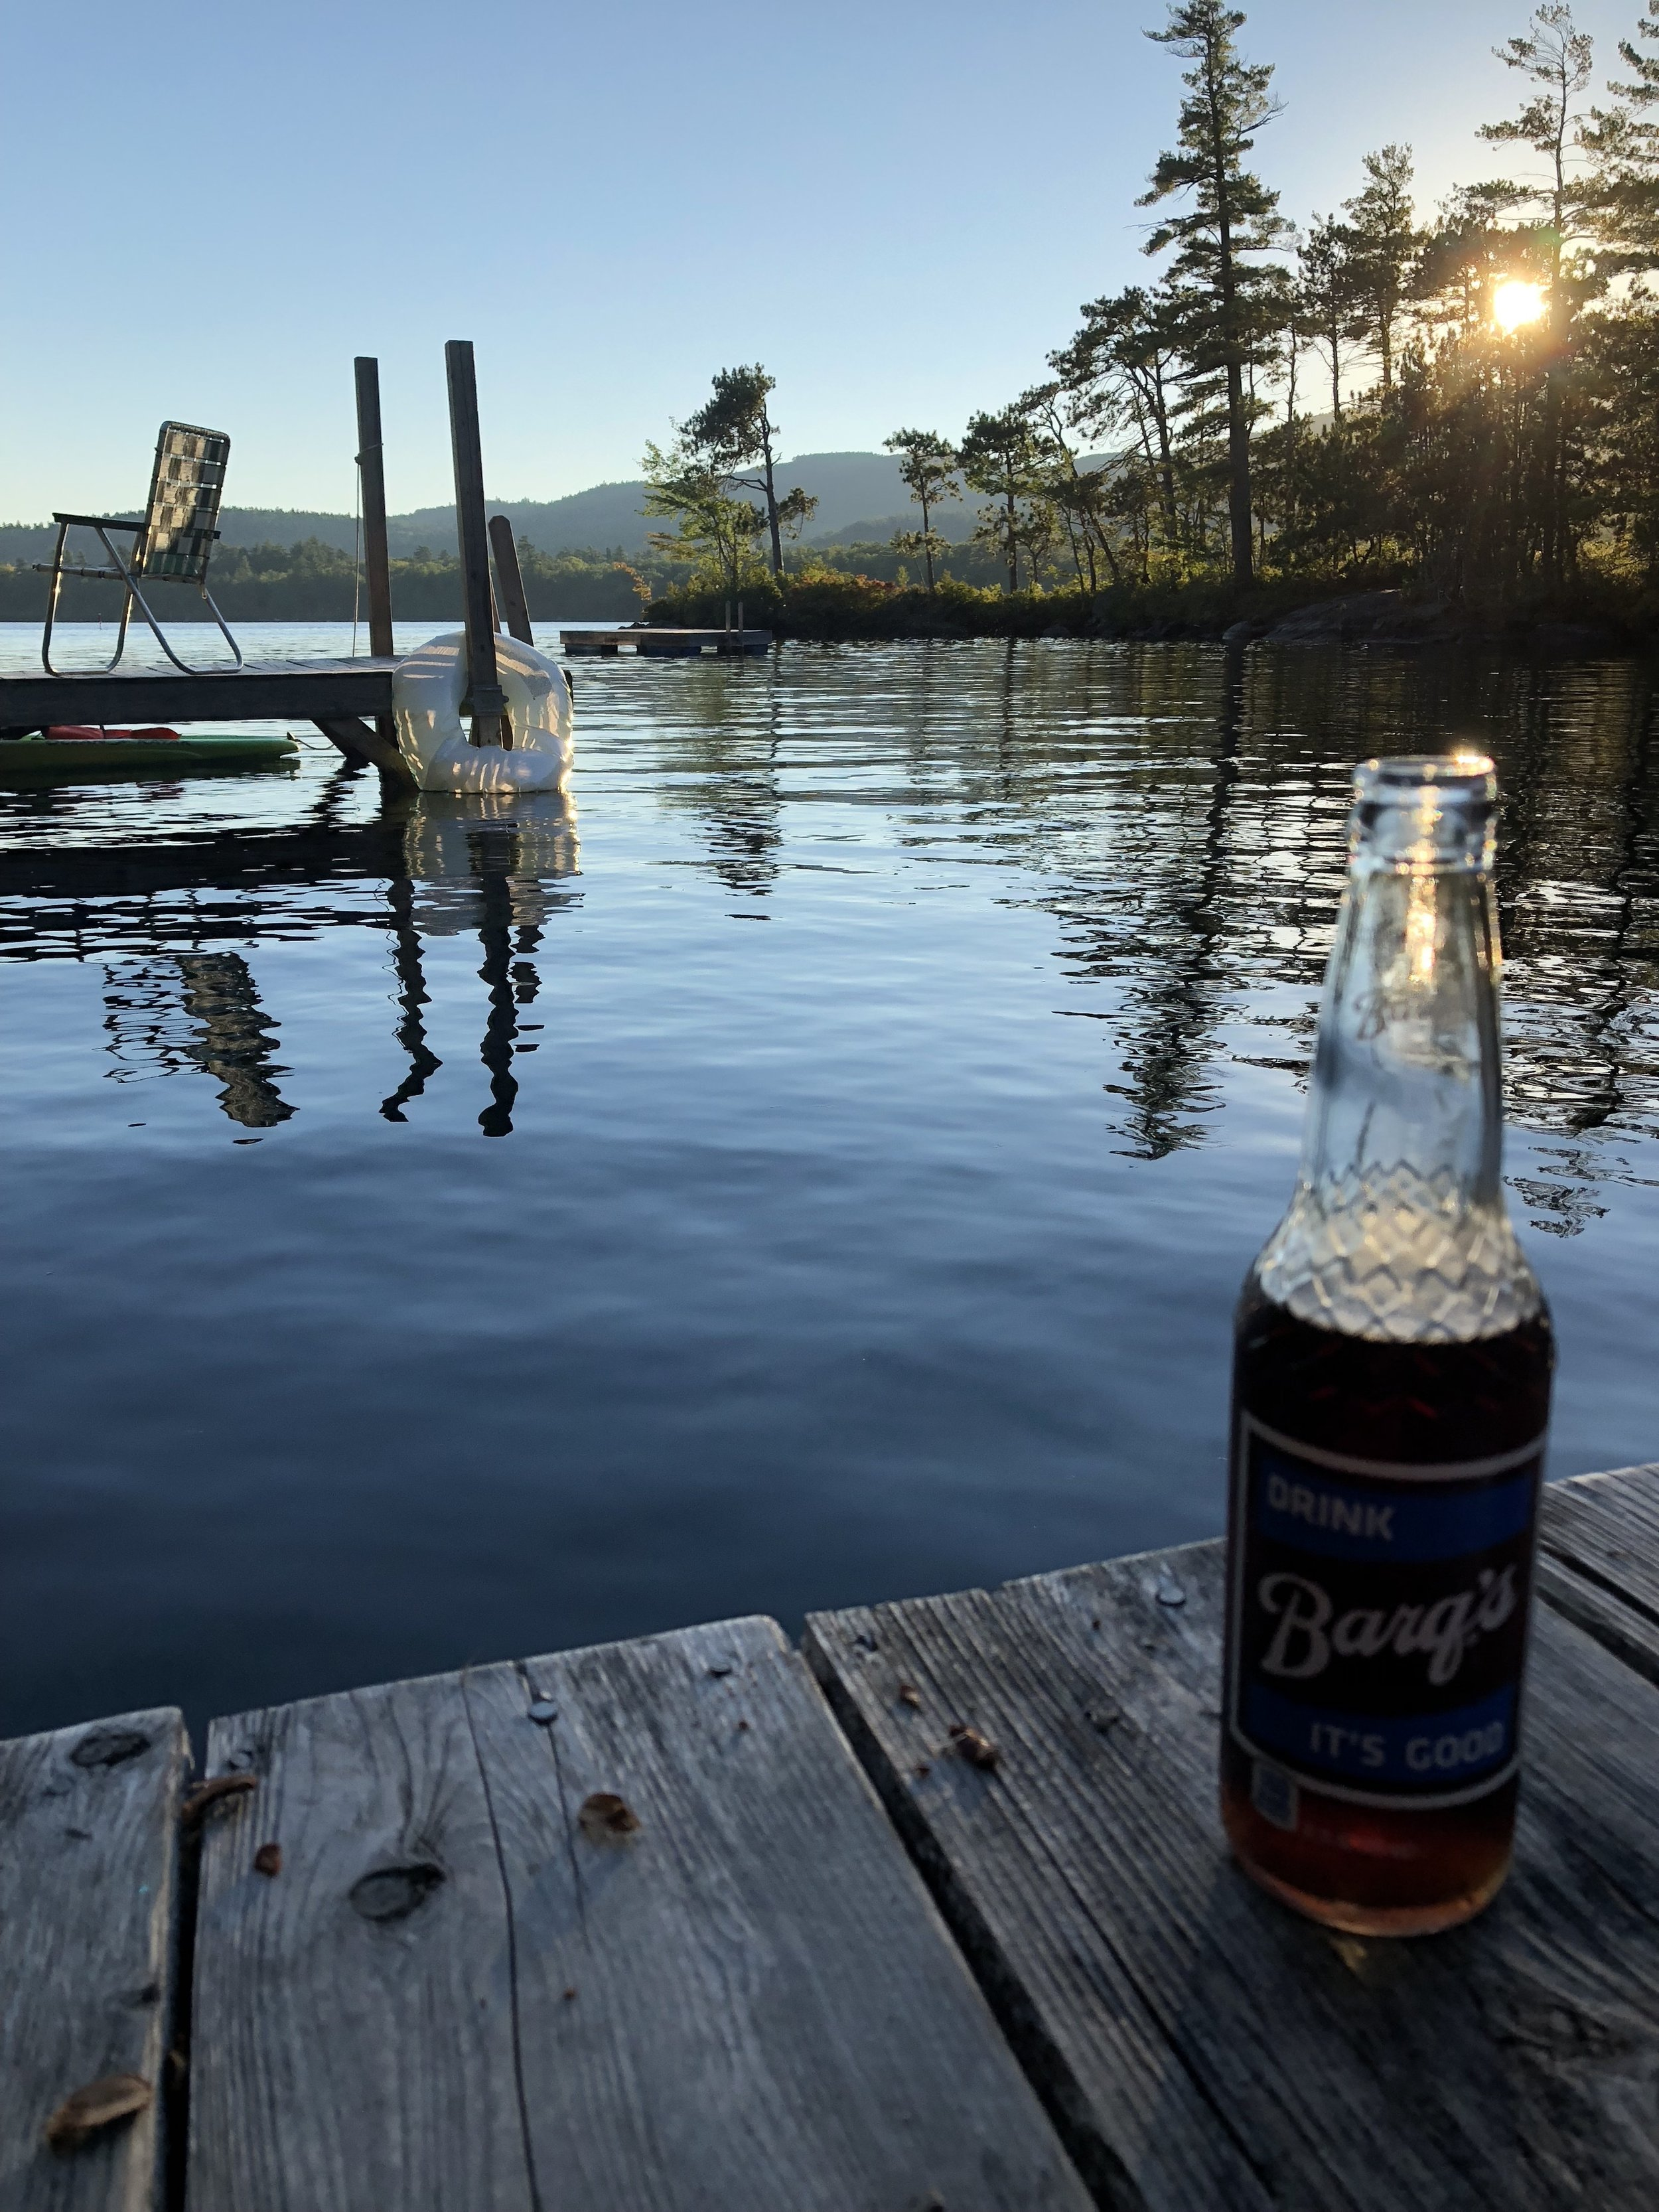 Our private dock…and I discovered Barq's blue label bottles at the country store.